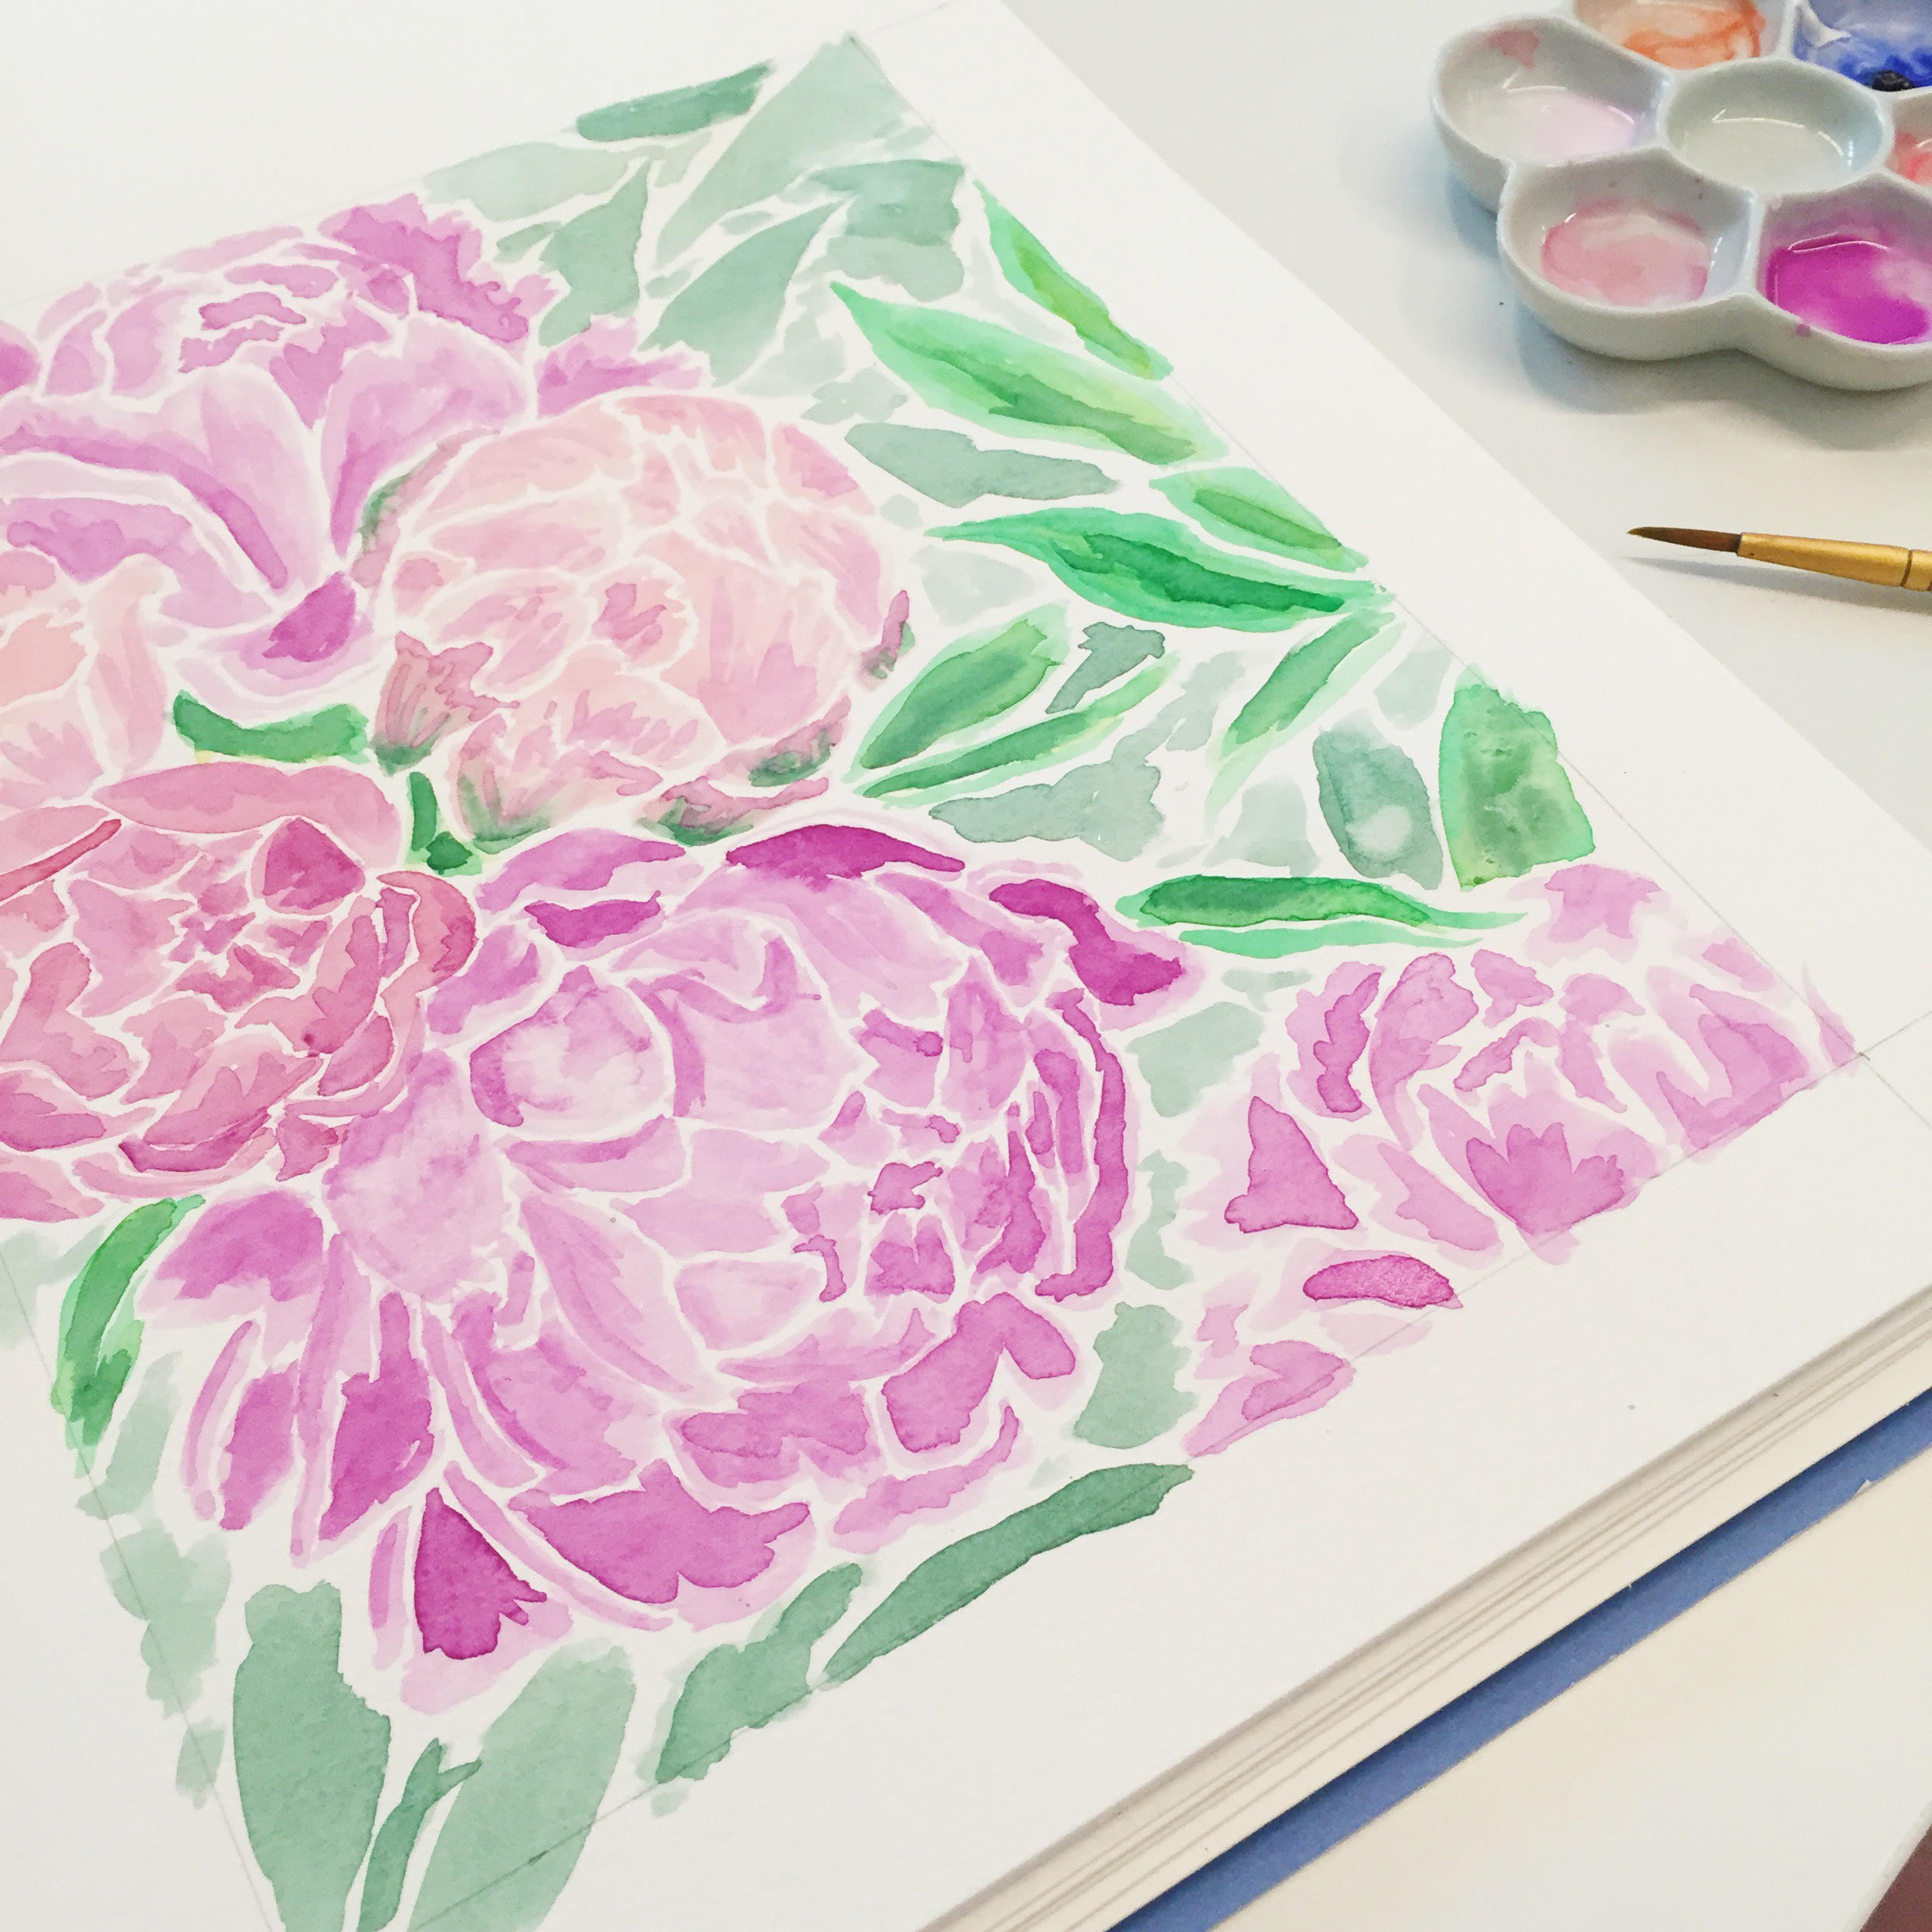 Sable and Gray Peony Painting 2